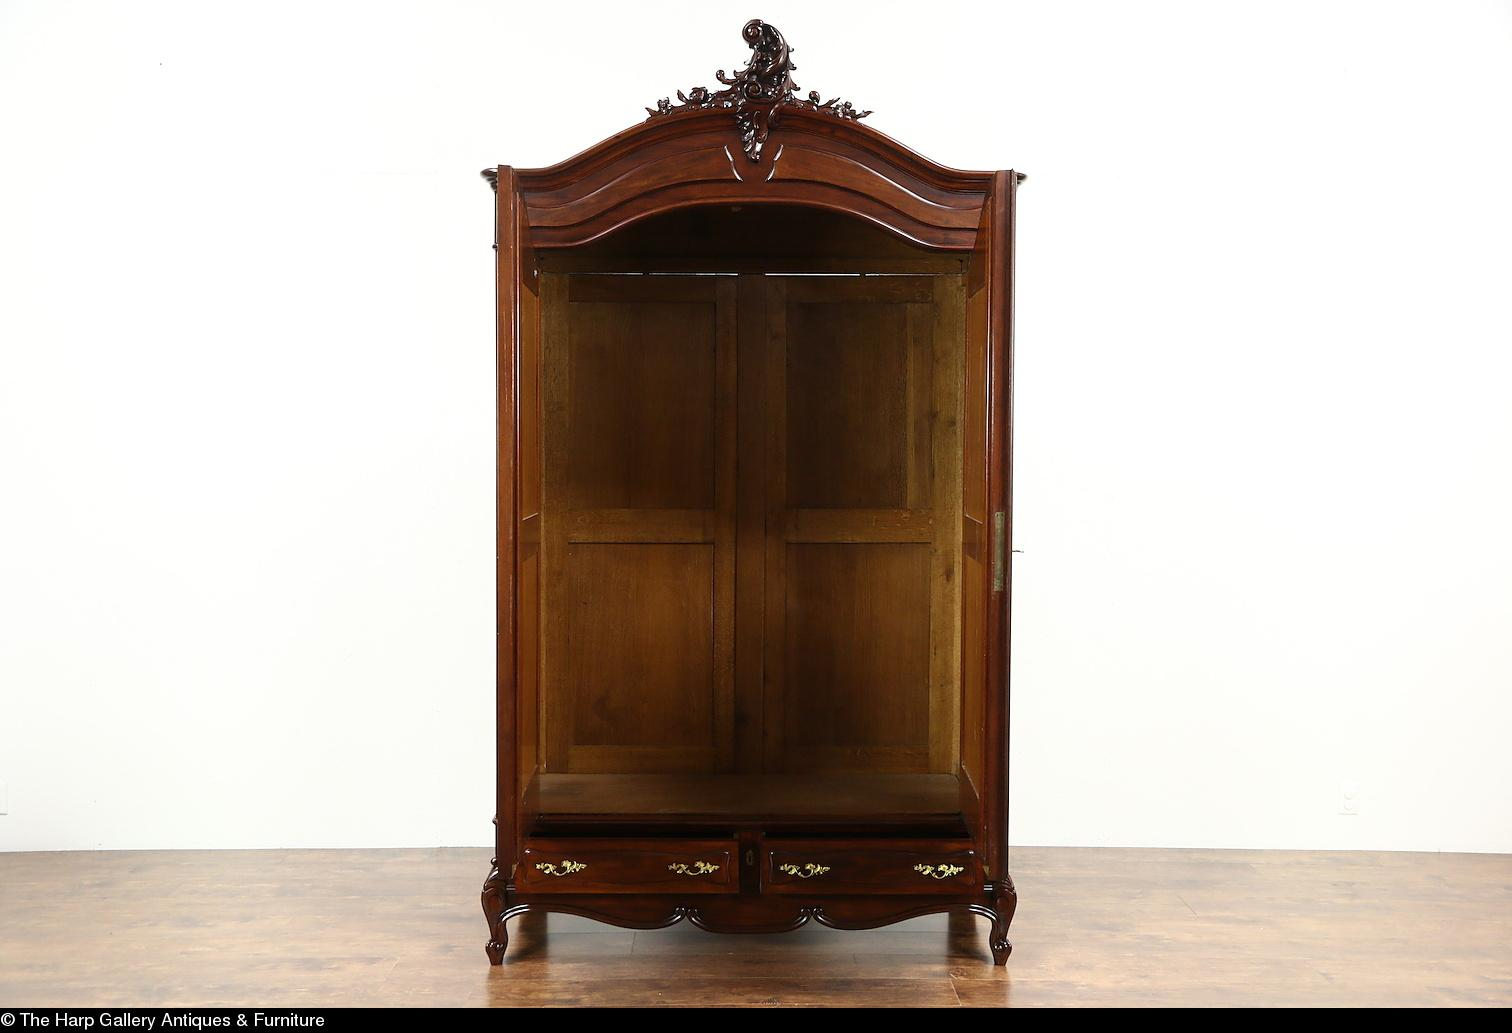 Roll over Large image to magnify, click Large image to zoom - French 1910 Antique Mahogany Armoire Or Wardrobe, Beveled Mirror